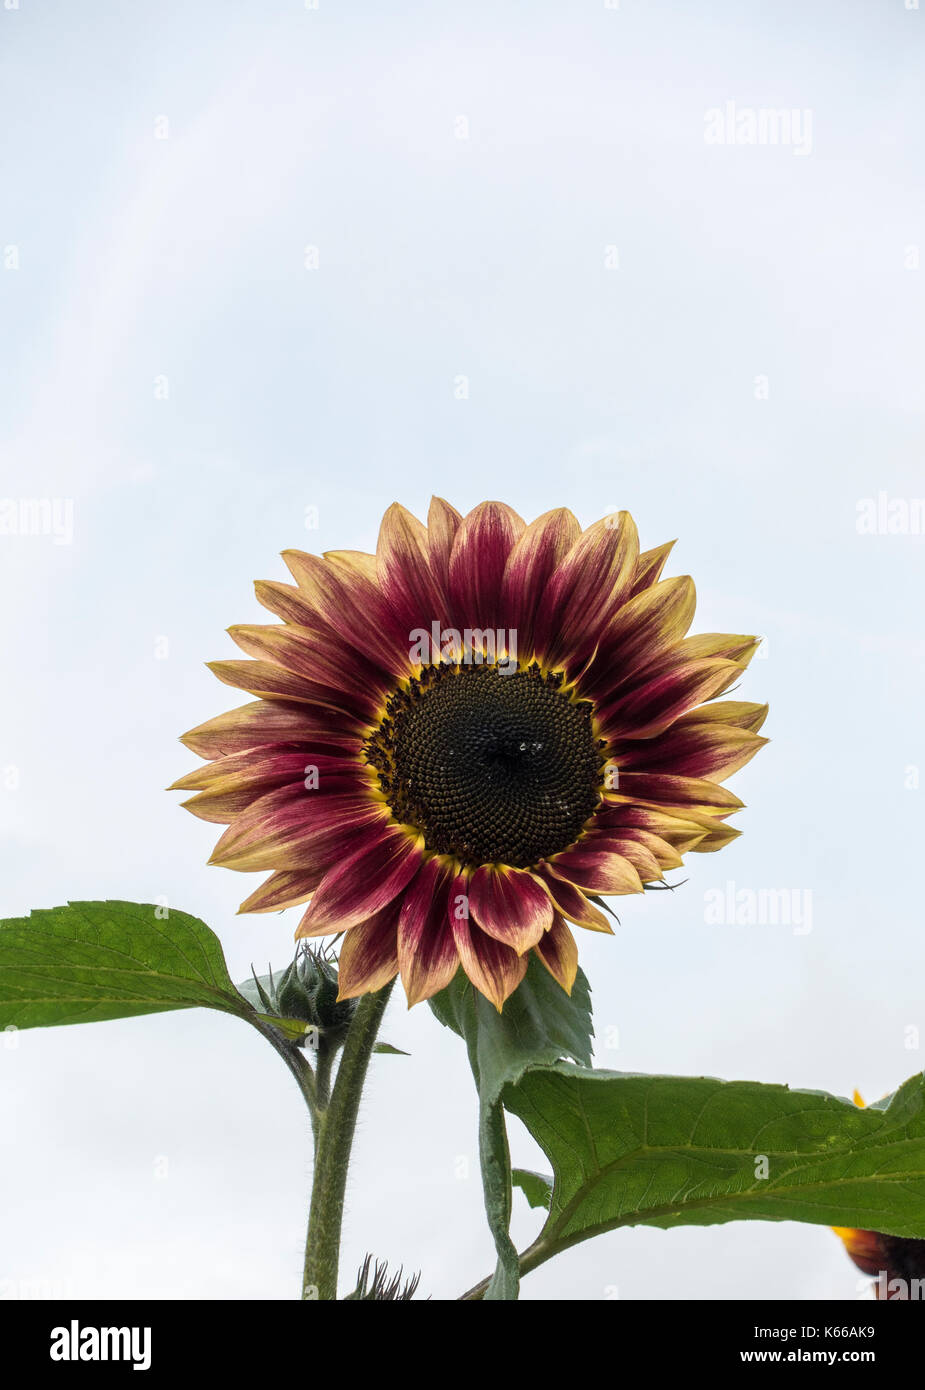 sunflower-shock-o-lat-K66AK9.jpg